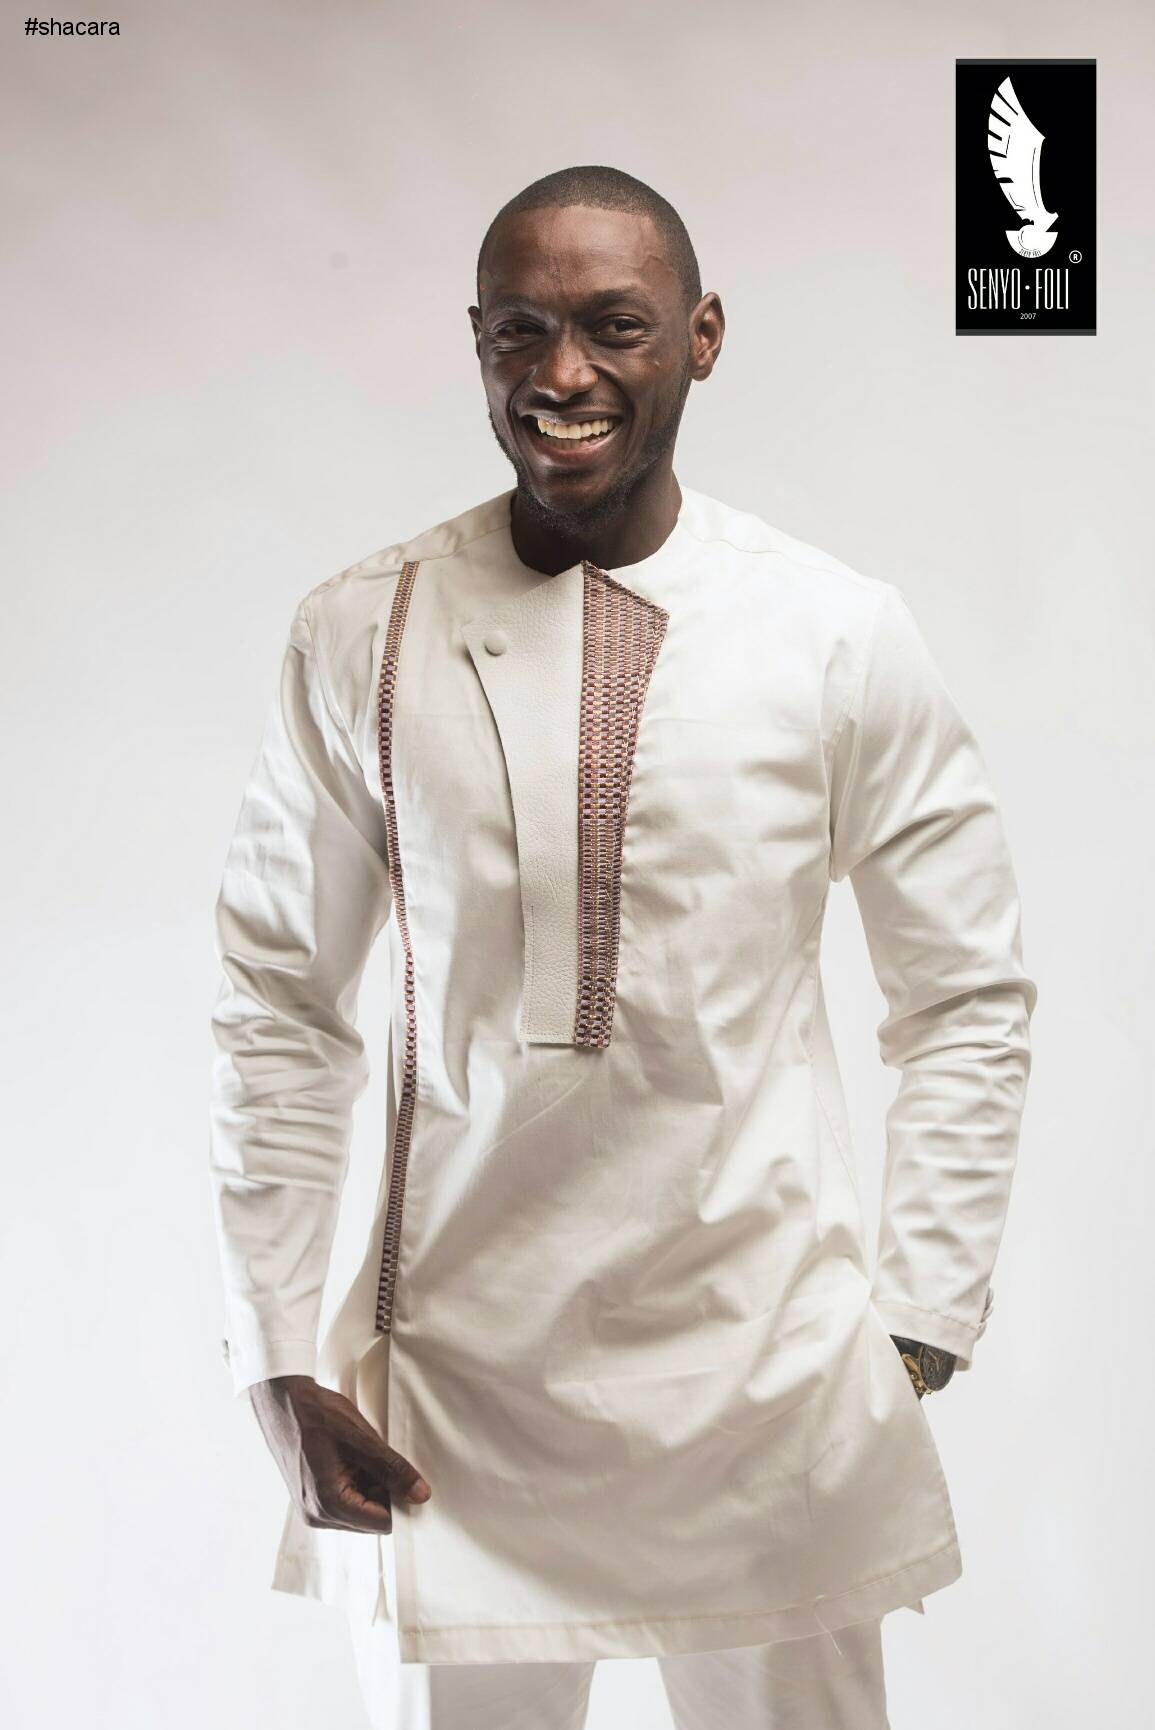 Amazing Ghanaian Designer Senyo.Foli Presents Their 'Leather & Luxury' Collection